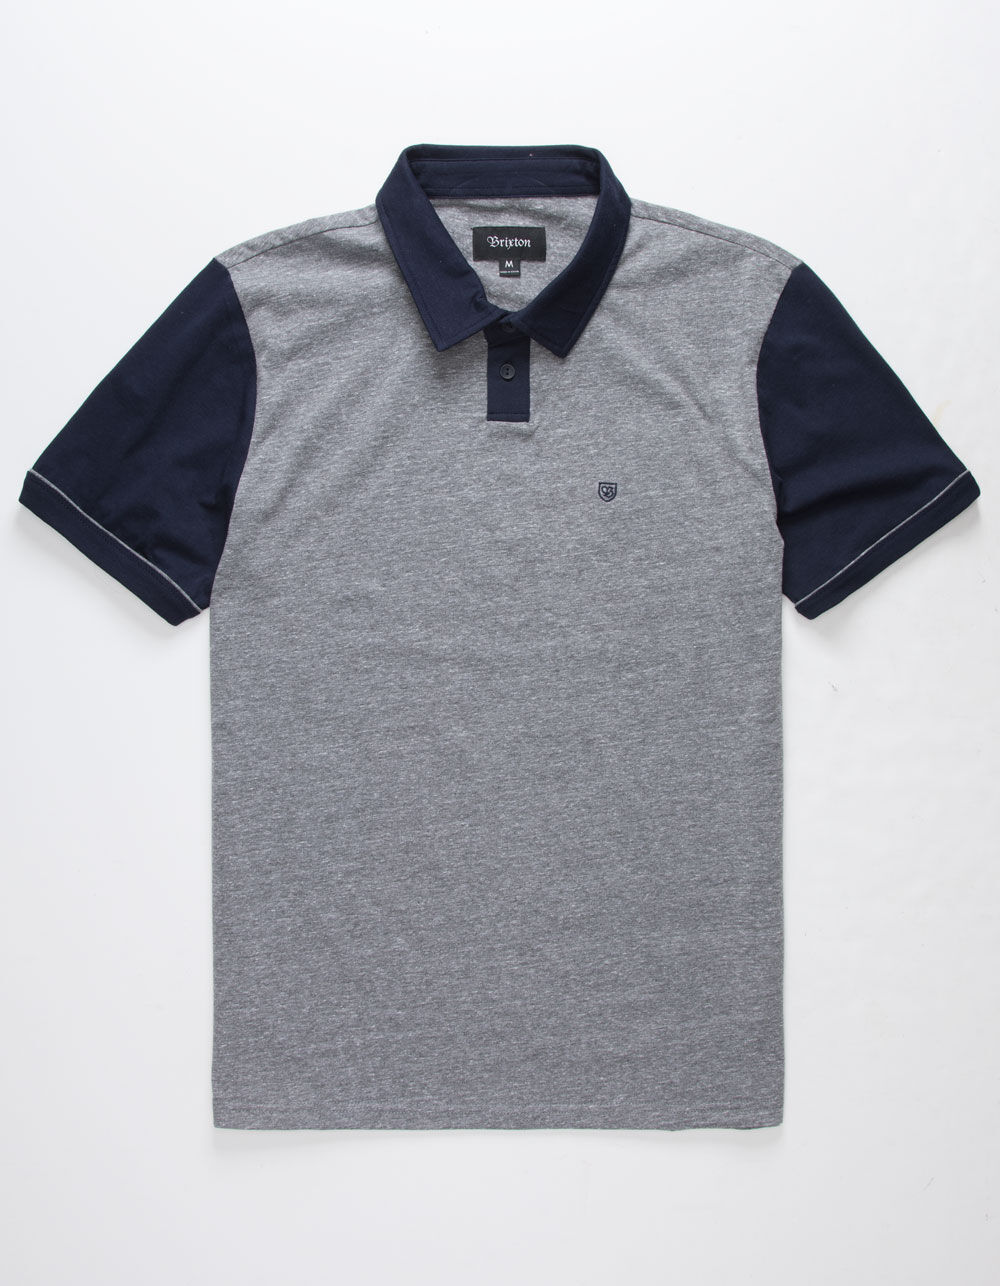 BRIXTON Carlos Gray & Navy Polo Shirt